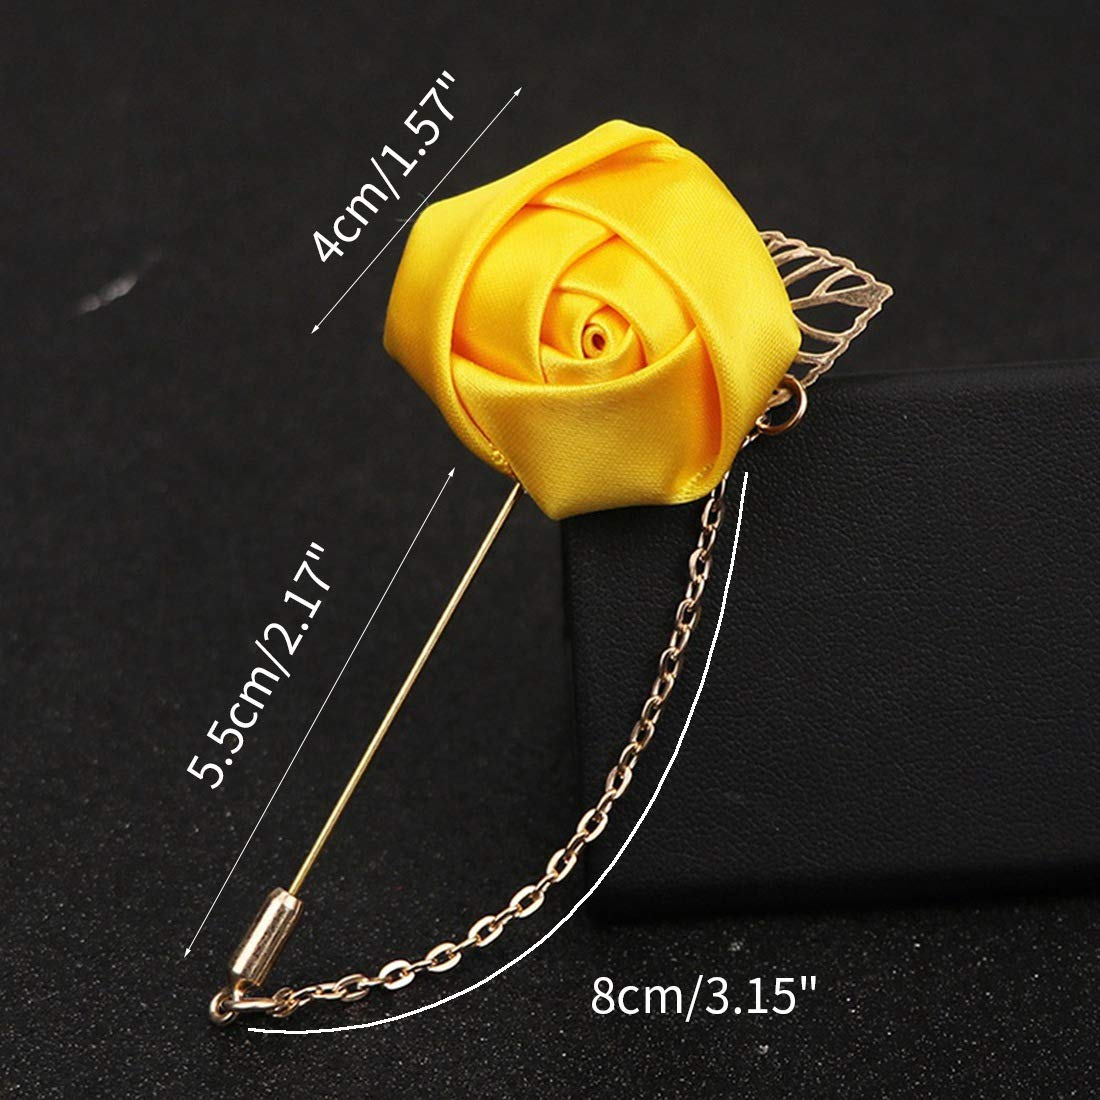 Dingtuo Mens Lapel Pin Rose Boutonniere Pin With Metal Chain For Suits Navy